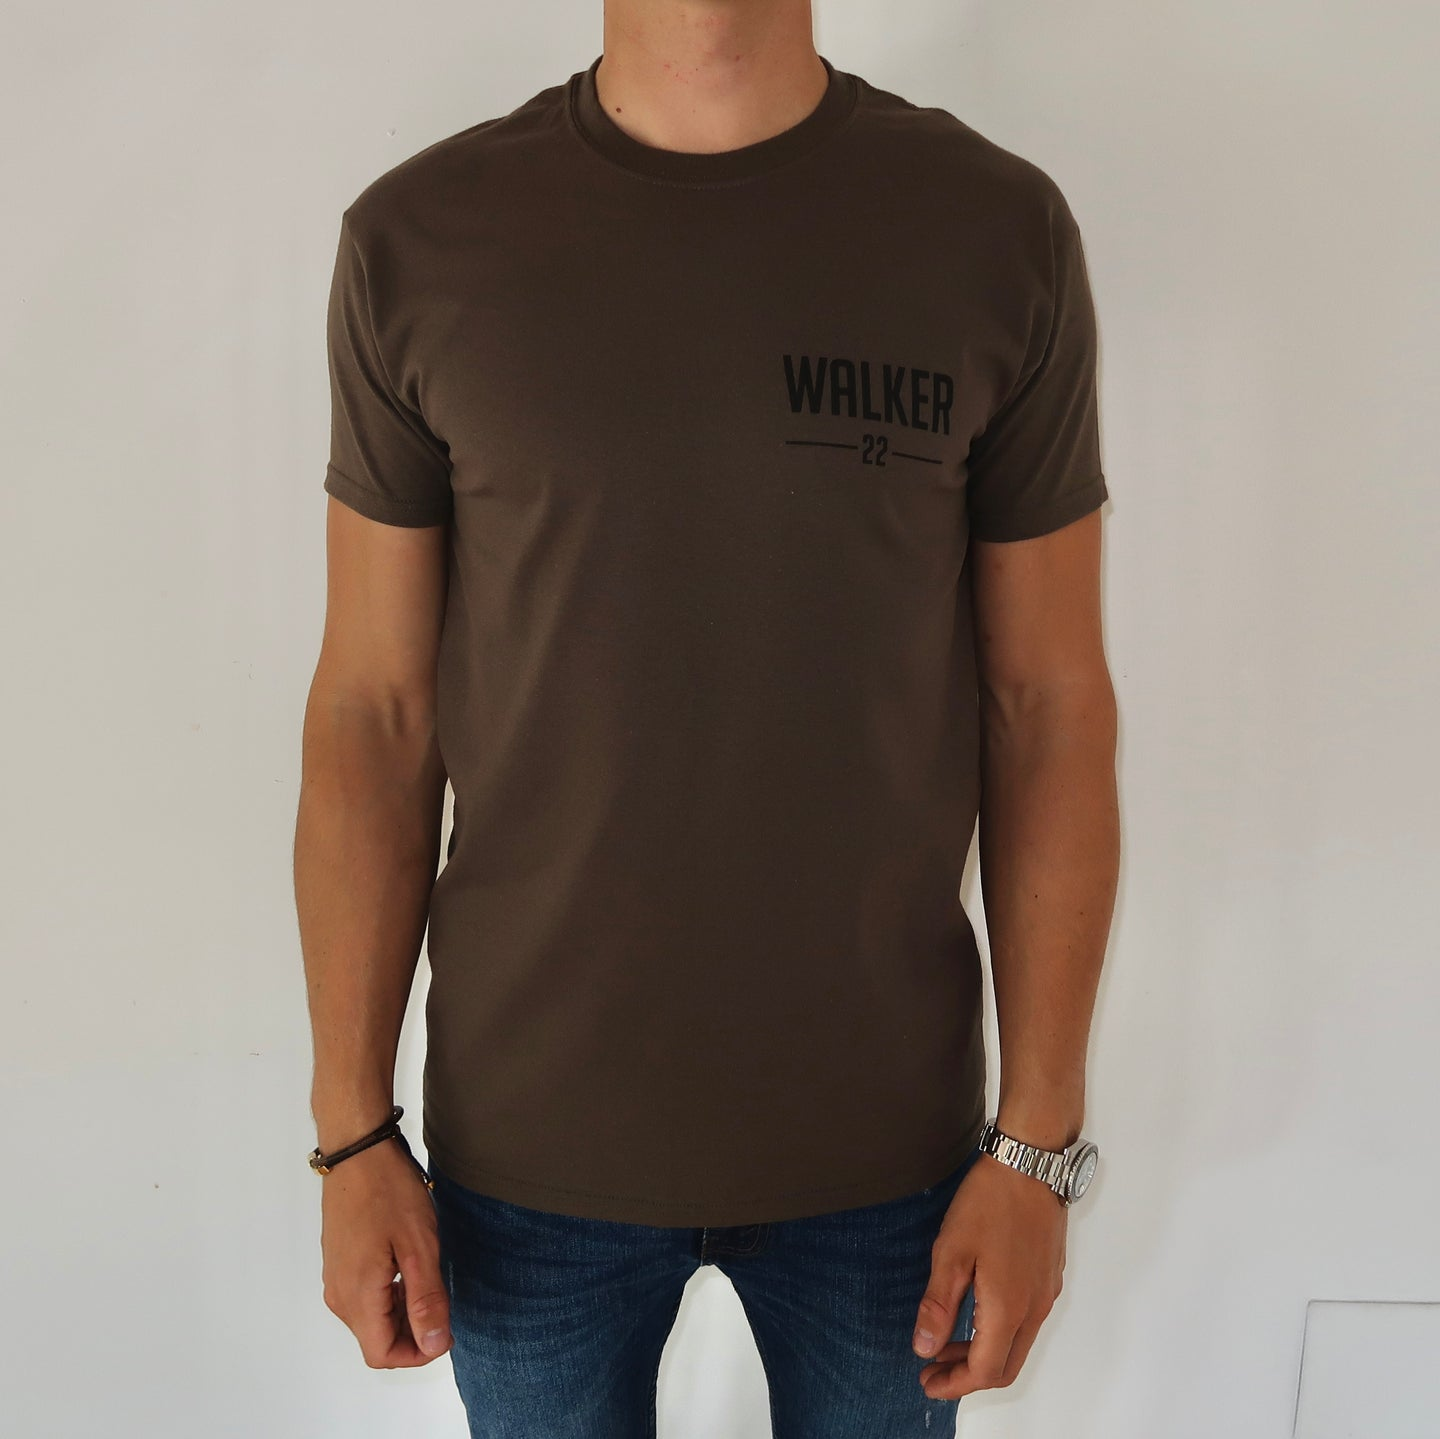 WALKER22 TEE small logo